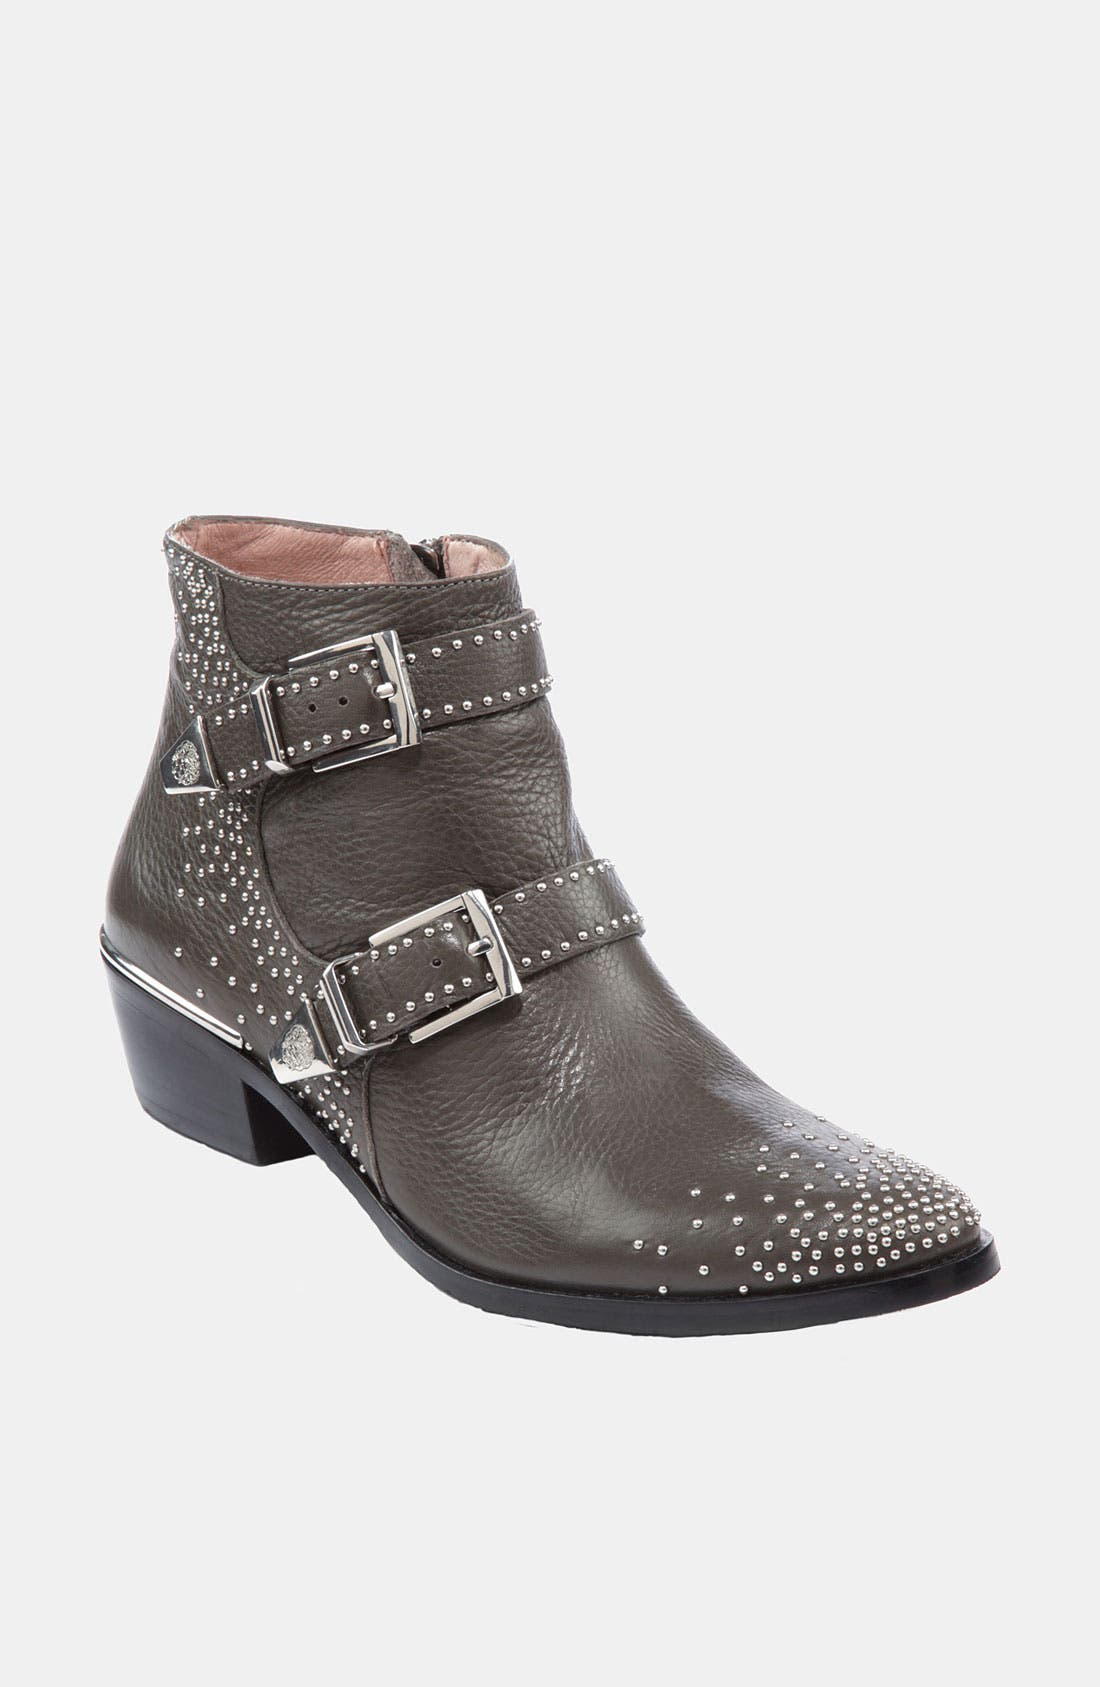 Alternate Image 1 Selected - Vince Camuto 'Tema' Bootie